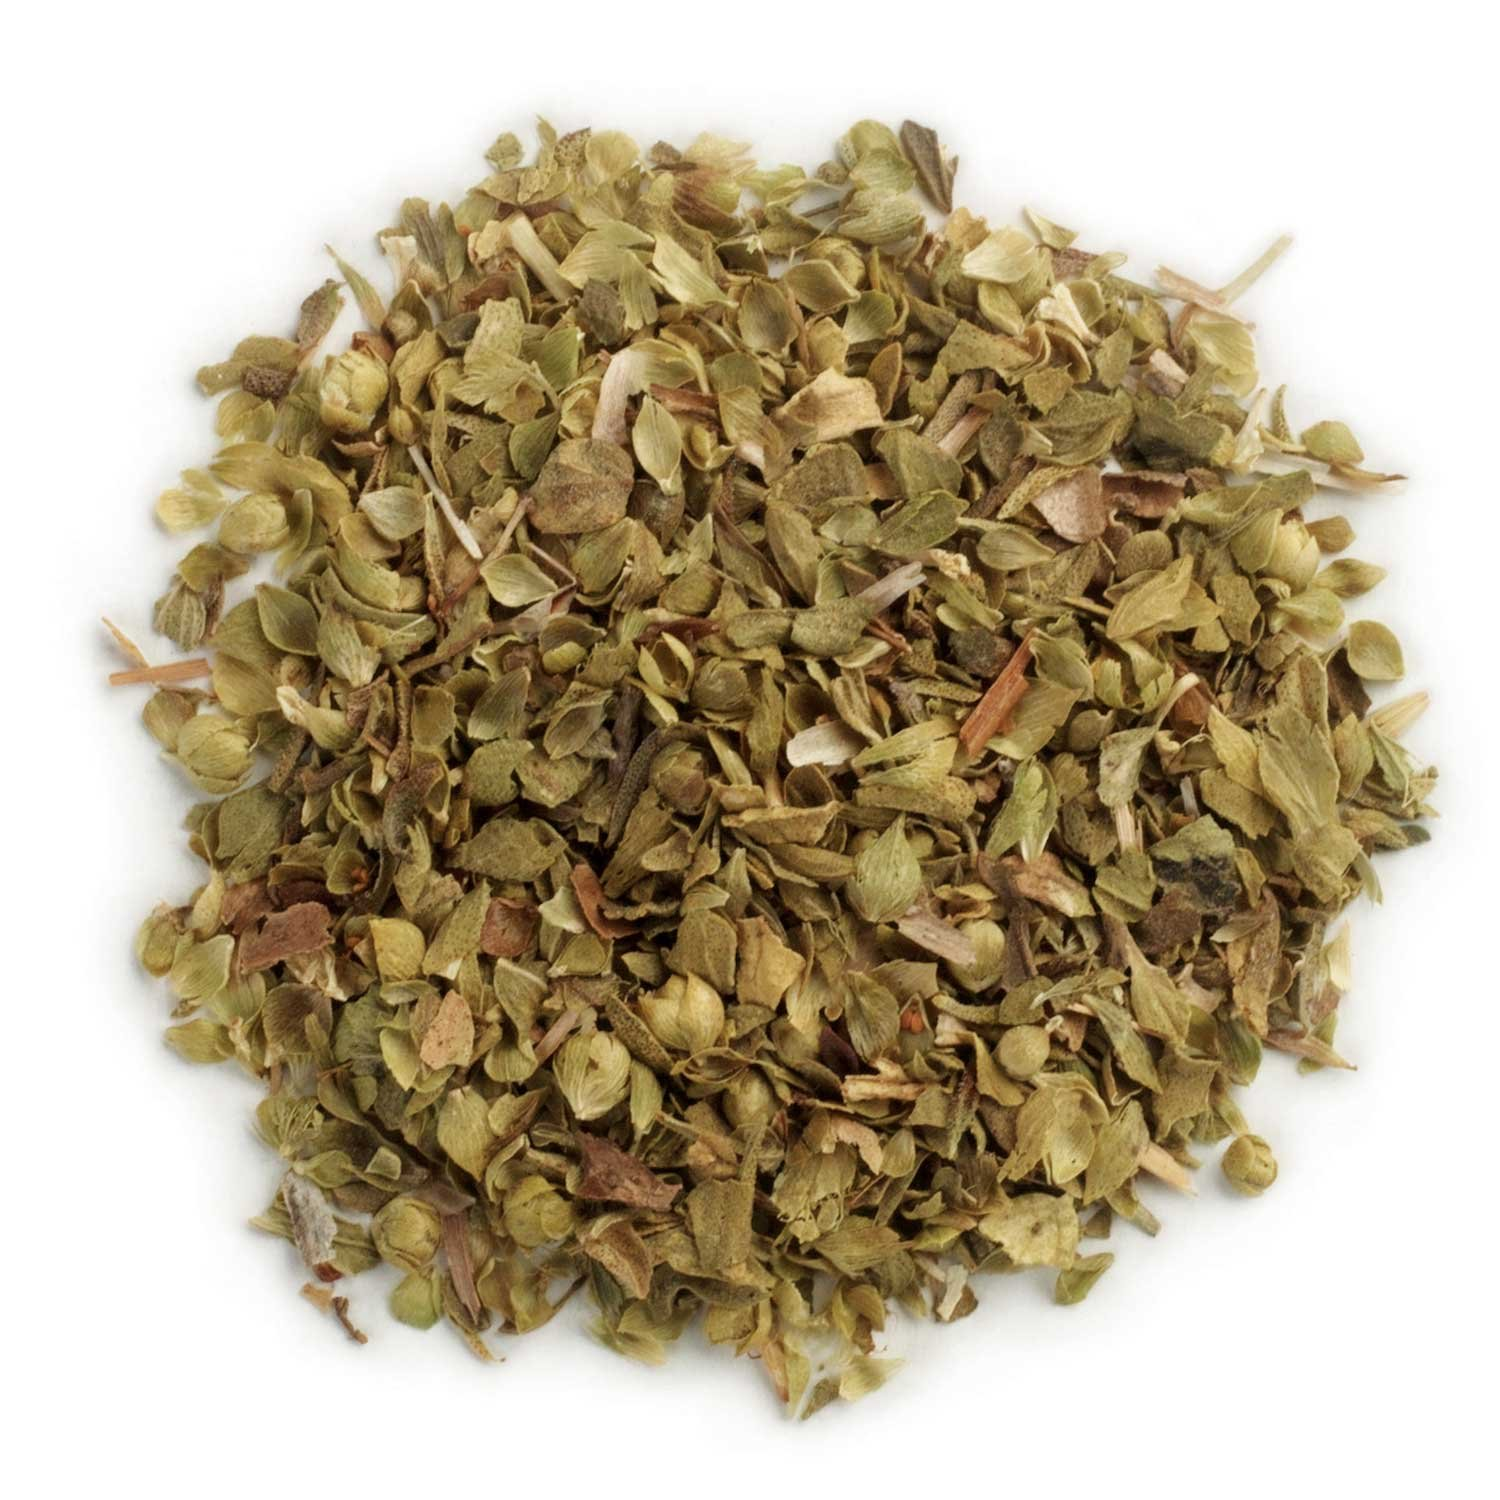 Frontier Co-op Organic Mediterranean Oregano Leaf, Cut & Sifted, Fancy Grade, 1 Pound Bulk Bag by Frontier (Image #1)